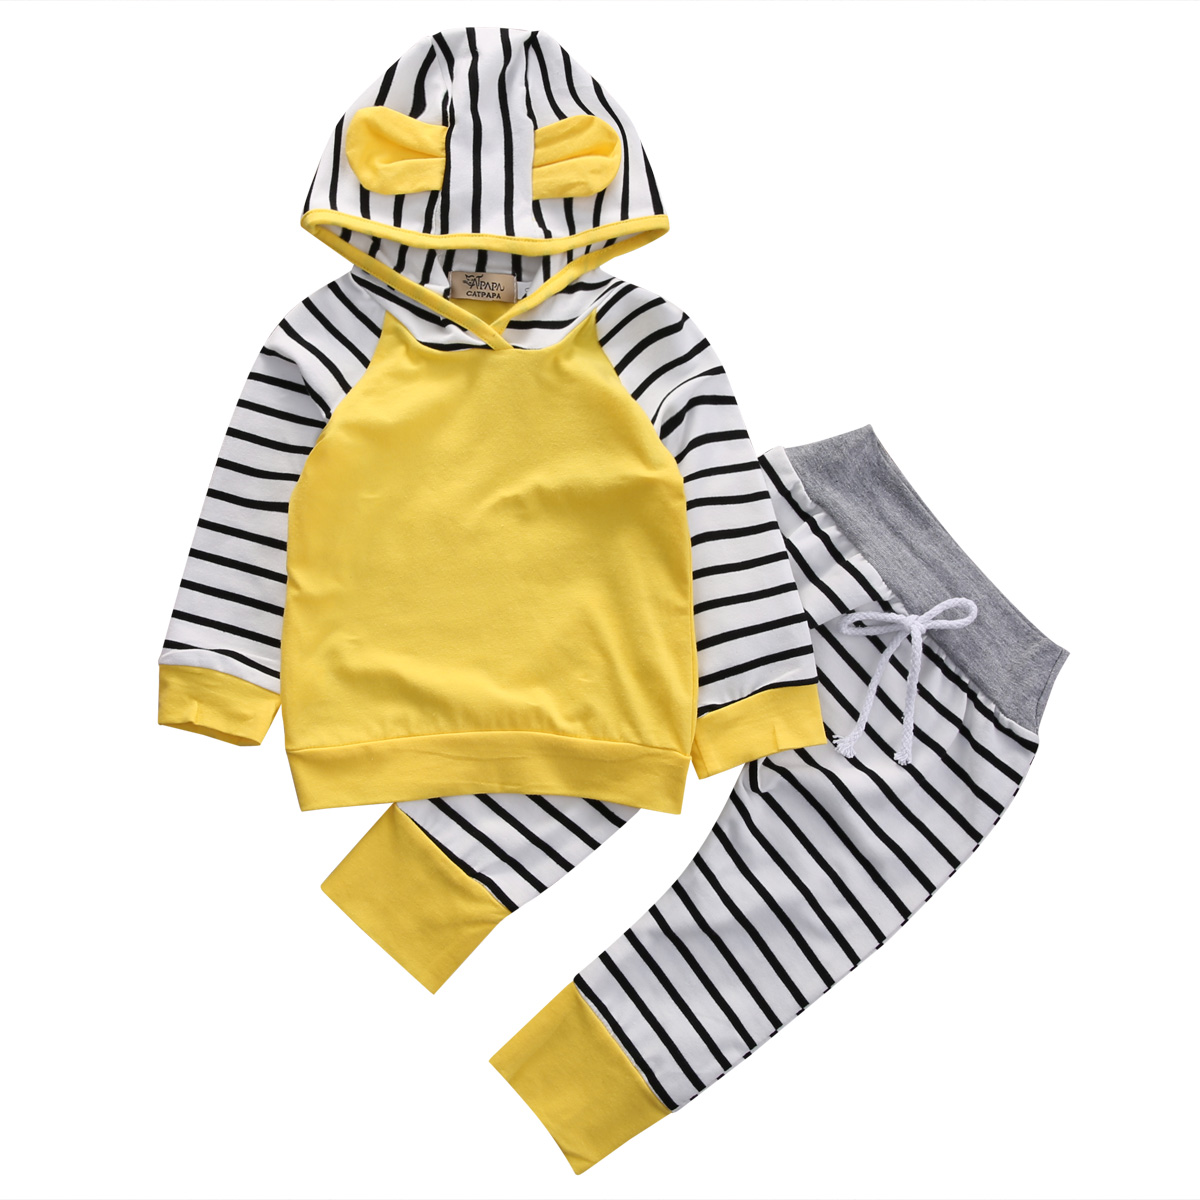 Autumn Winter Toddler Kids Baby Boys Clothes Striped Hooded T-shirt Tops+Pants 2PCS Outfit Set 0-3Y db3814 dave bella autumn baby boys star printed t shirt kids navy tees bosy tops kids t shirts